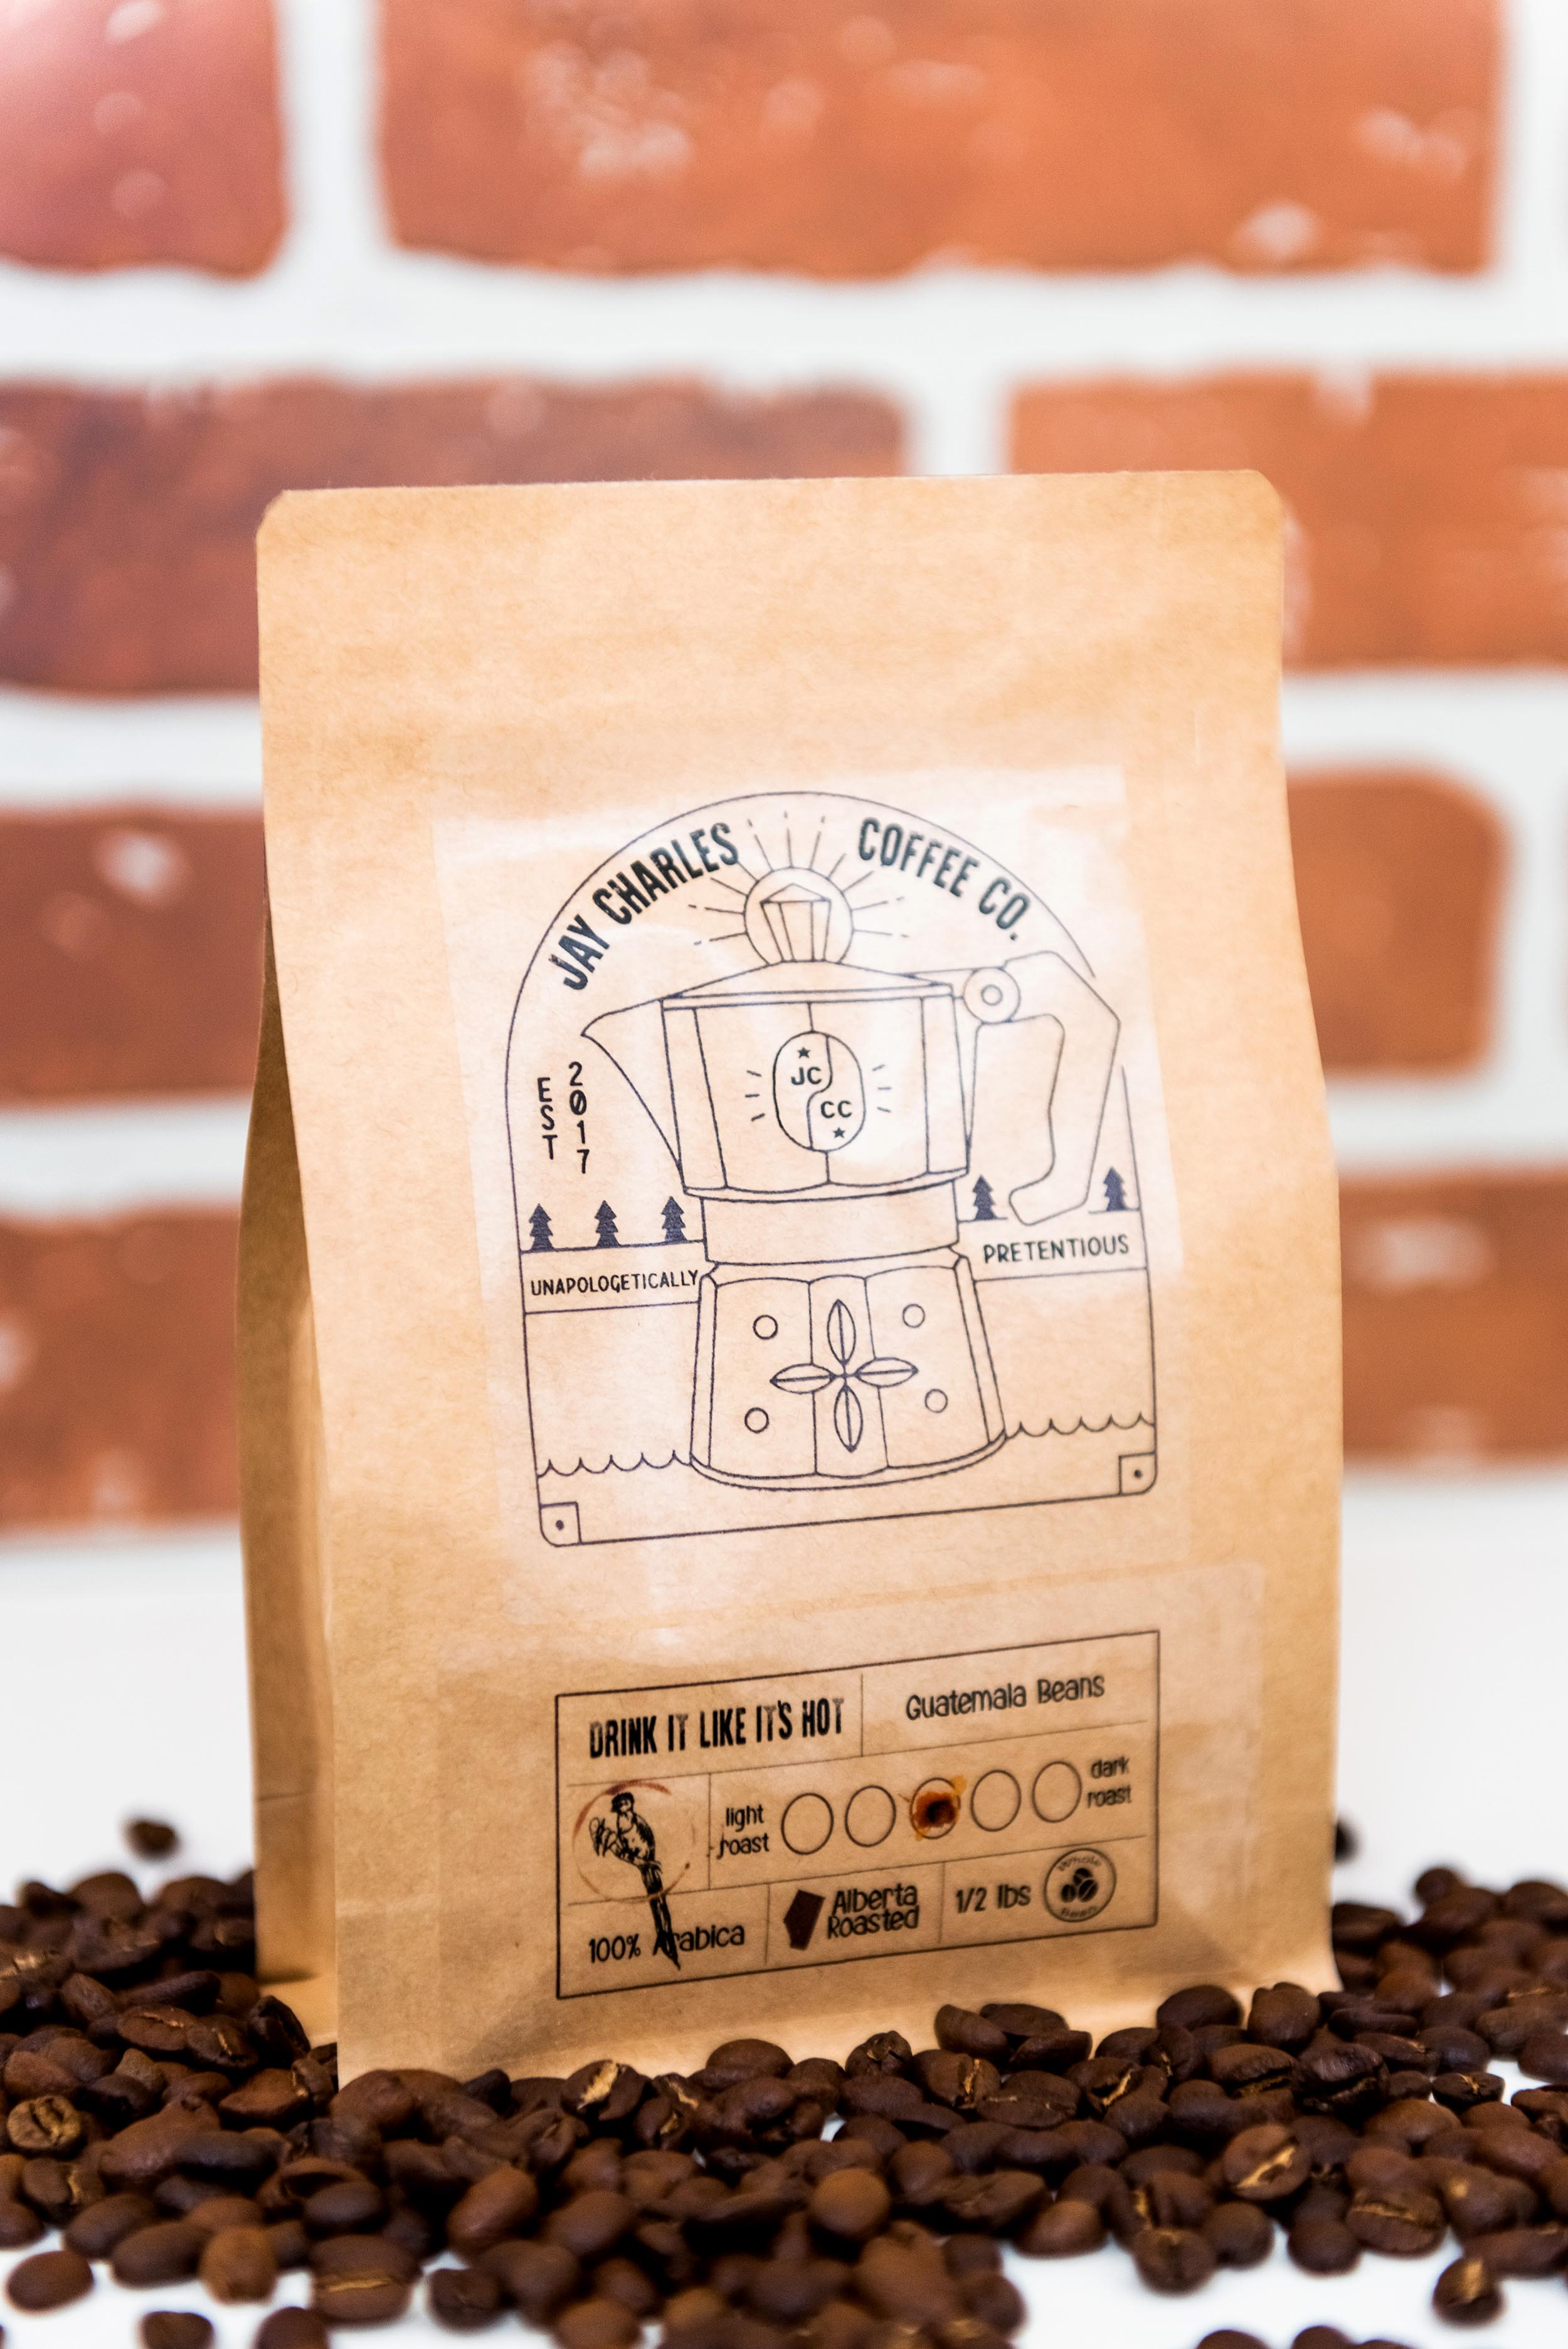 Drink It Like Its Hot- Calgary Coffee Subscriptions